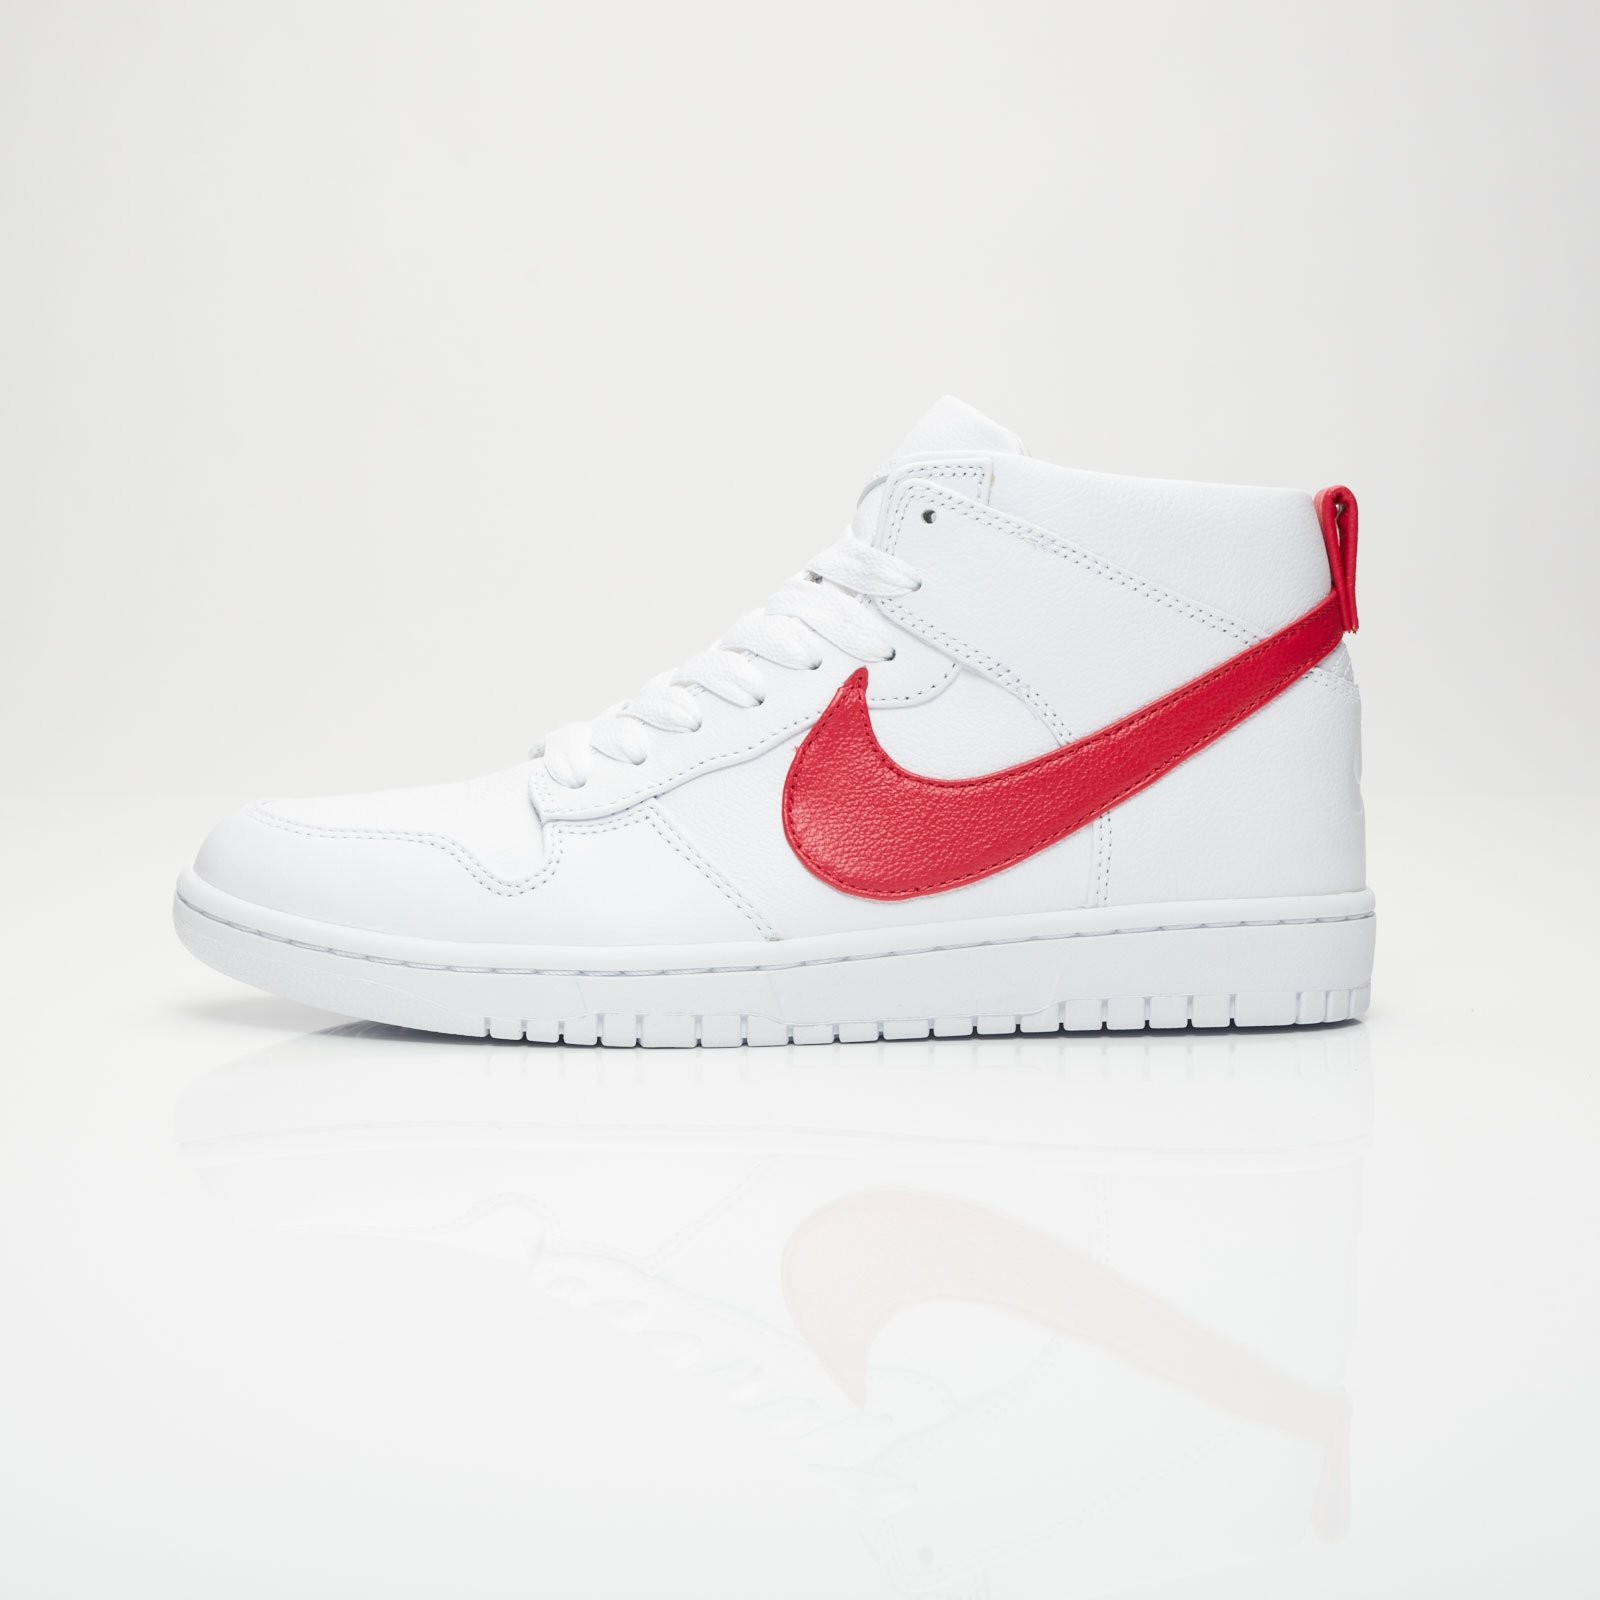 low priced 5febe 80e49 Nike Dunk Lux Chukka   Rt - 910088-100 - Sneakersnstuff   sneakers    streetwear online since 1999